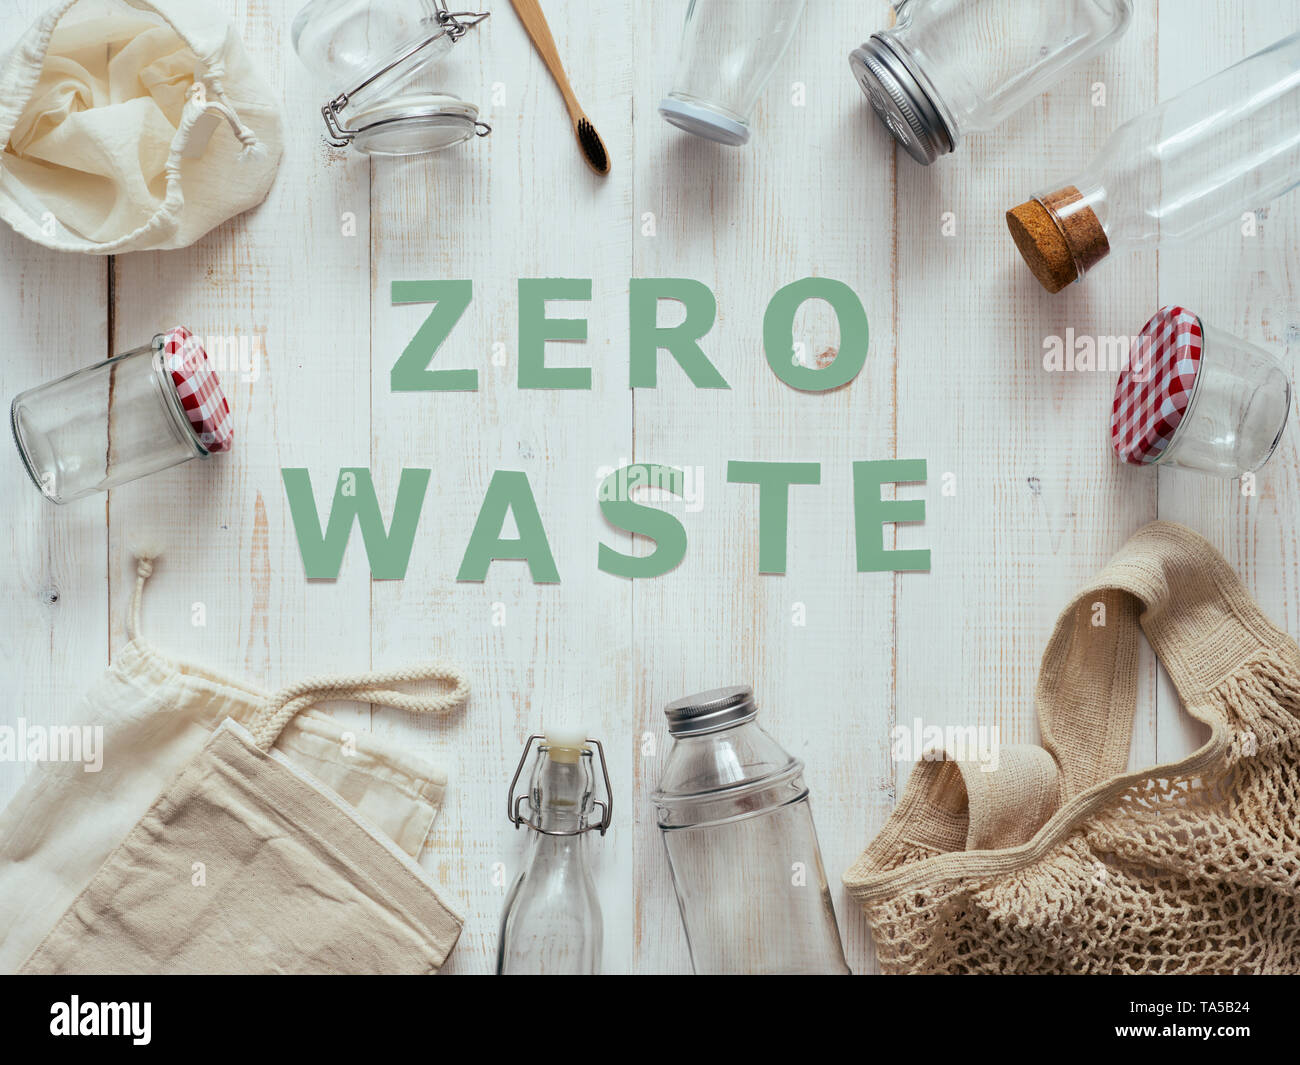 Zero waste concept. Textile eco bags, glass jars and bamboo toothbrush on white wooden background with Zero Waste green paper text in center. Eco frie - Stock Image